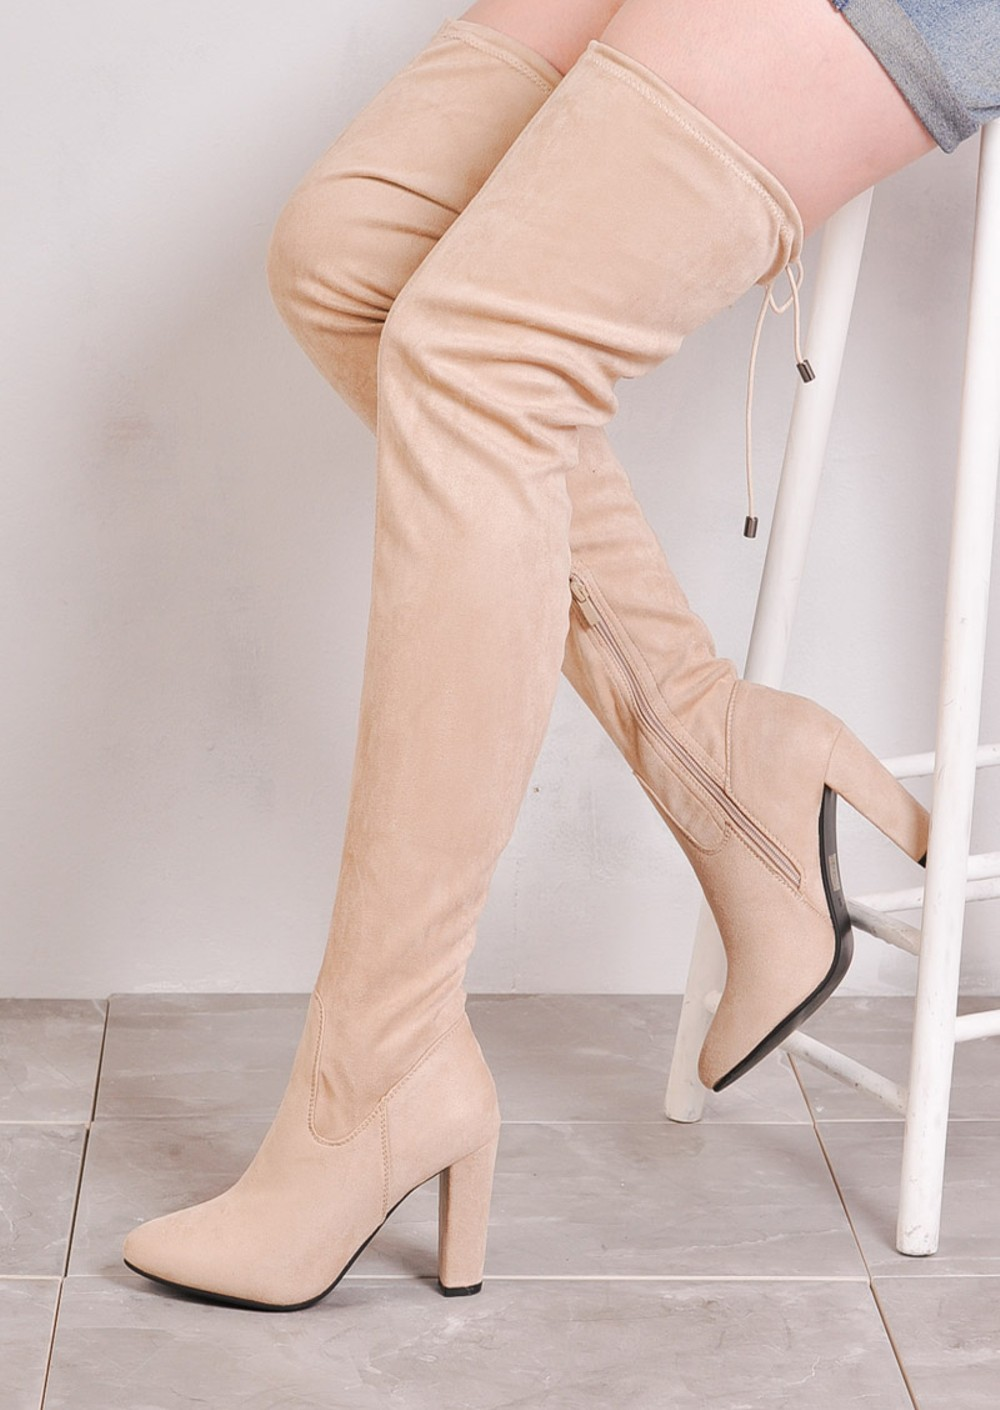 PUMPS. Versatile, timeless and easy to style, pumps are the ultimate wardrobe essentials. Whether you prefer round or pointed toes, we have the perfect pairs for you.